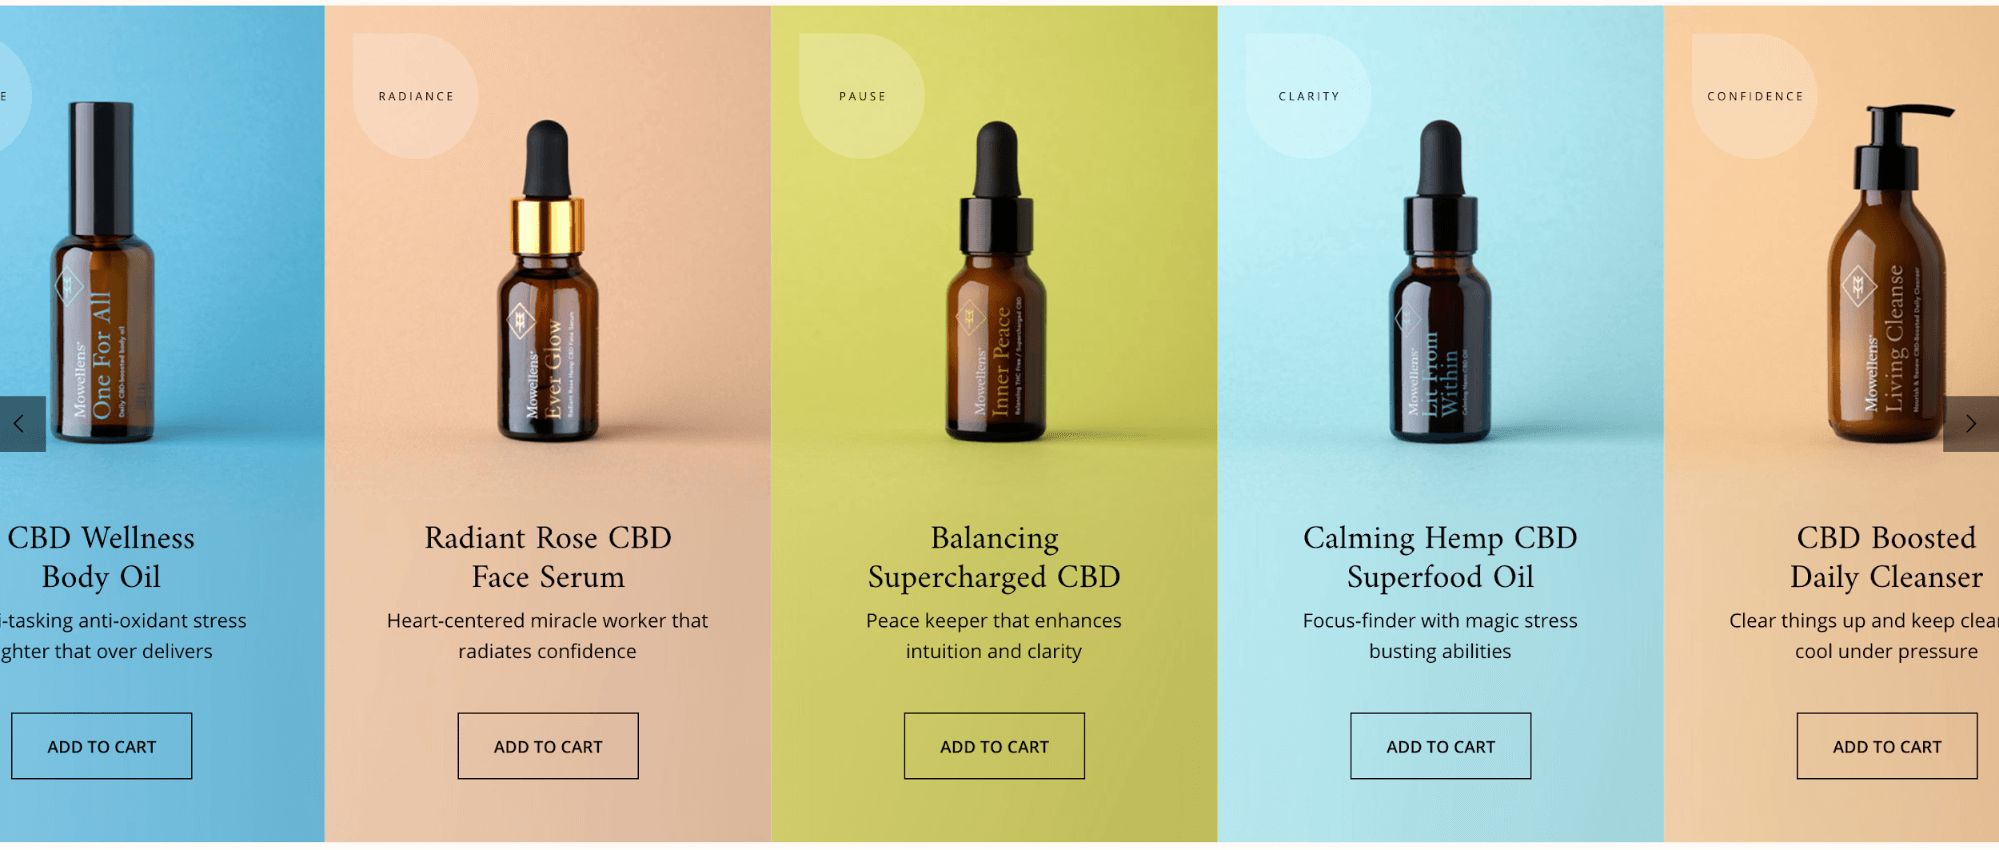 product images in a grid design for ecommerce store